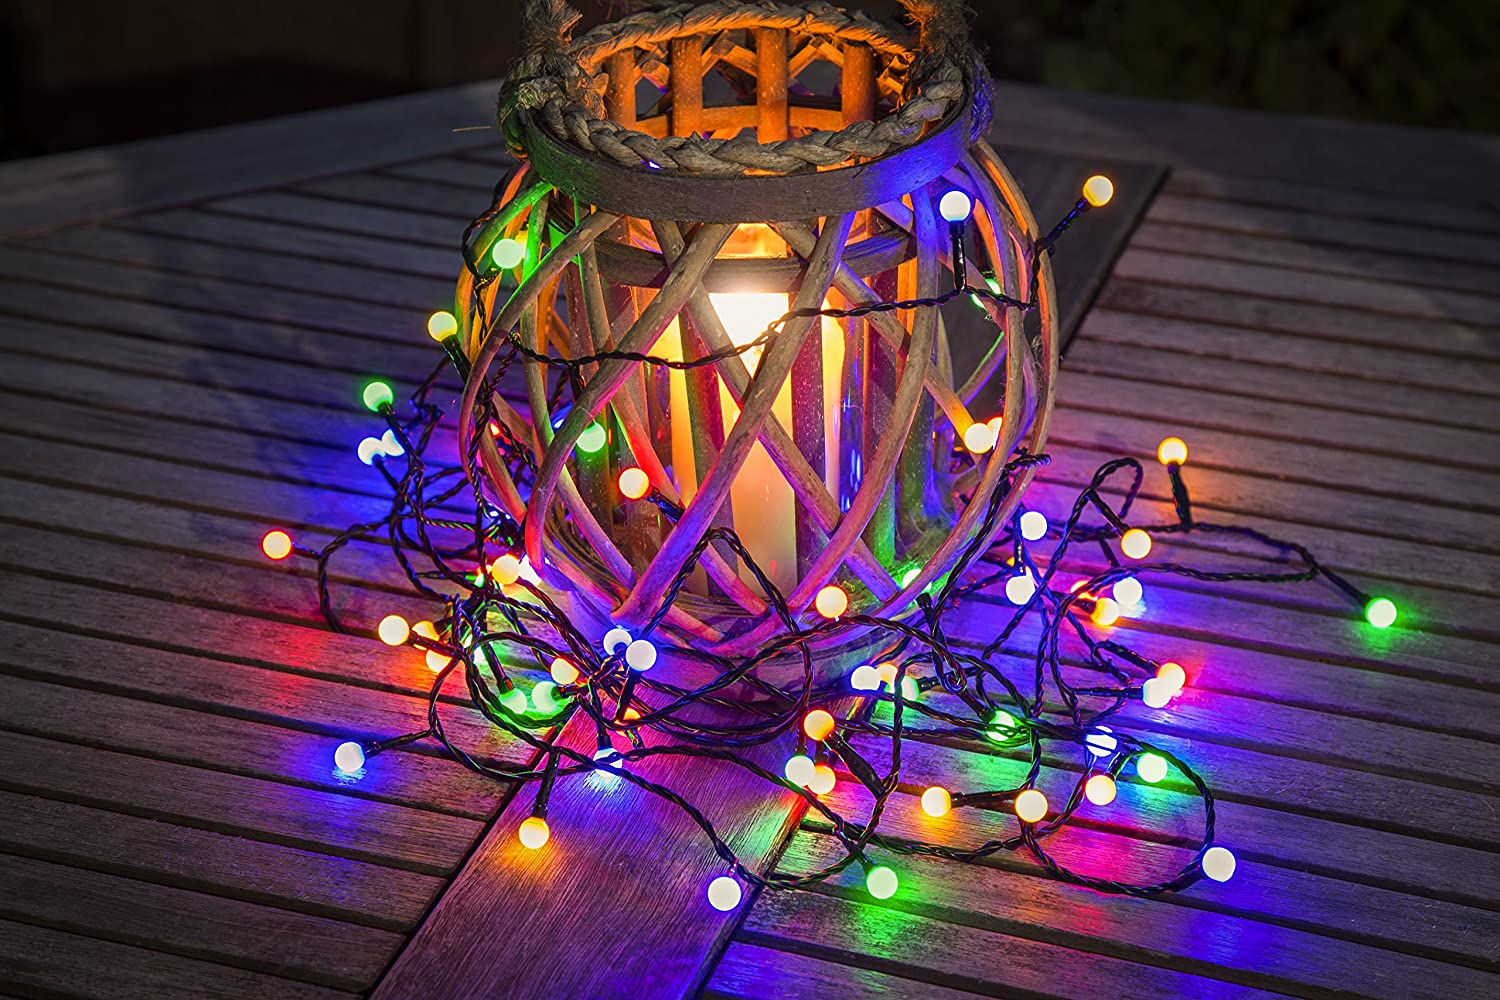 Konstsmide outdoor light set 80 led multi coloured berry fairy konstsmide outdoor light set 80 led multi coloured berry fairy lights indooroutdoor use on black cable amazon lighting mozeypictures Image collections